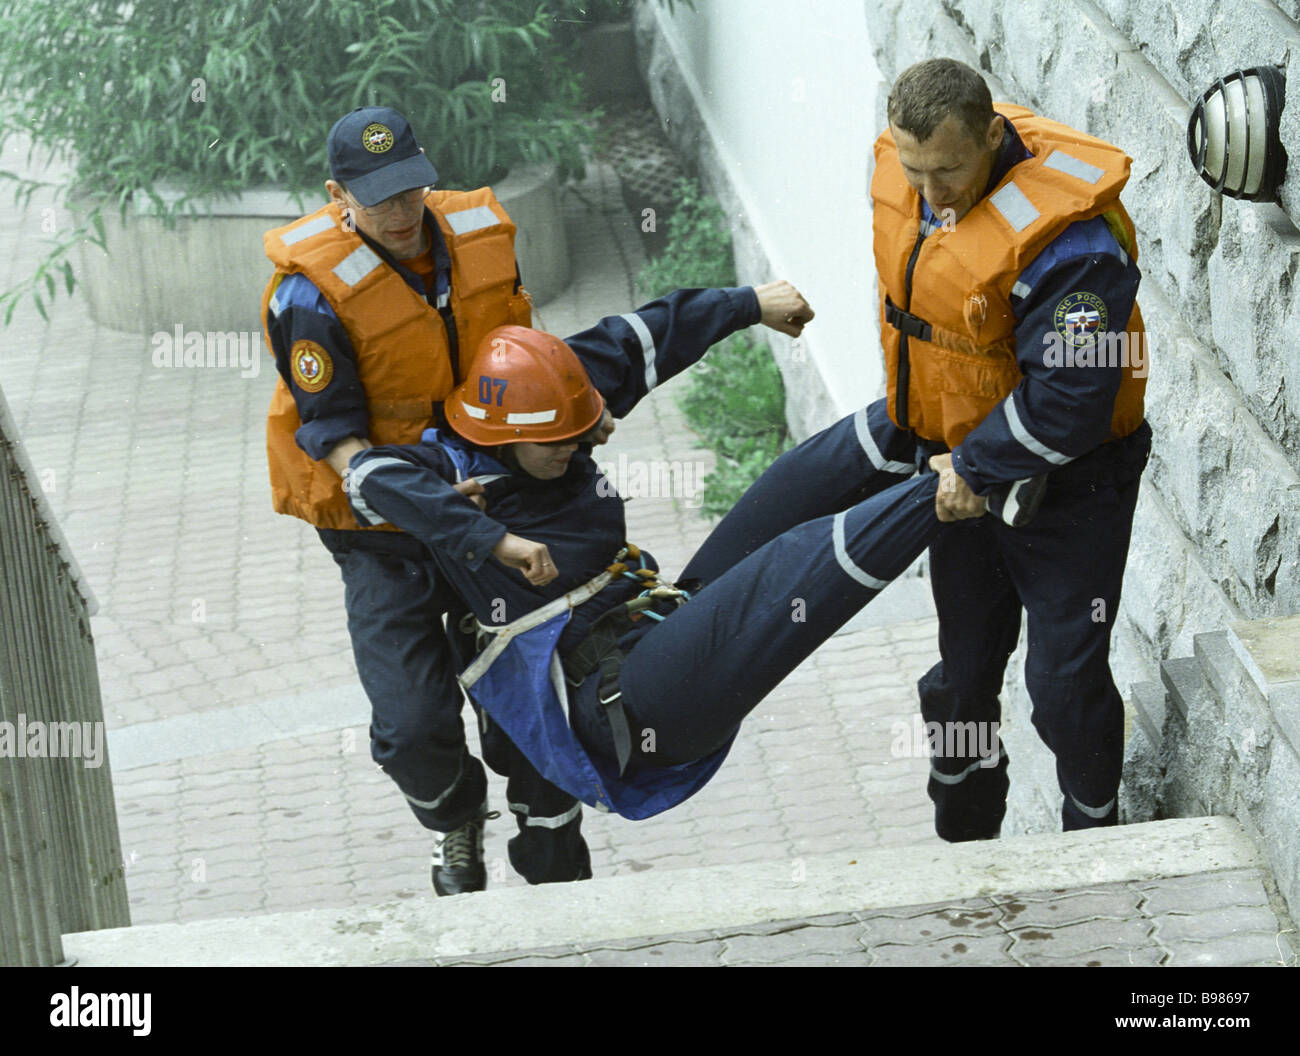 Rescuers removing a victim during a command and staff exercise on eliminating effects of terrorist acts - Stock Image